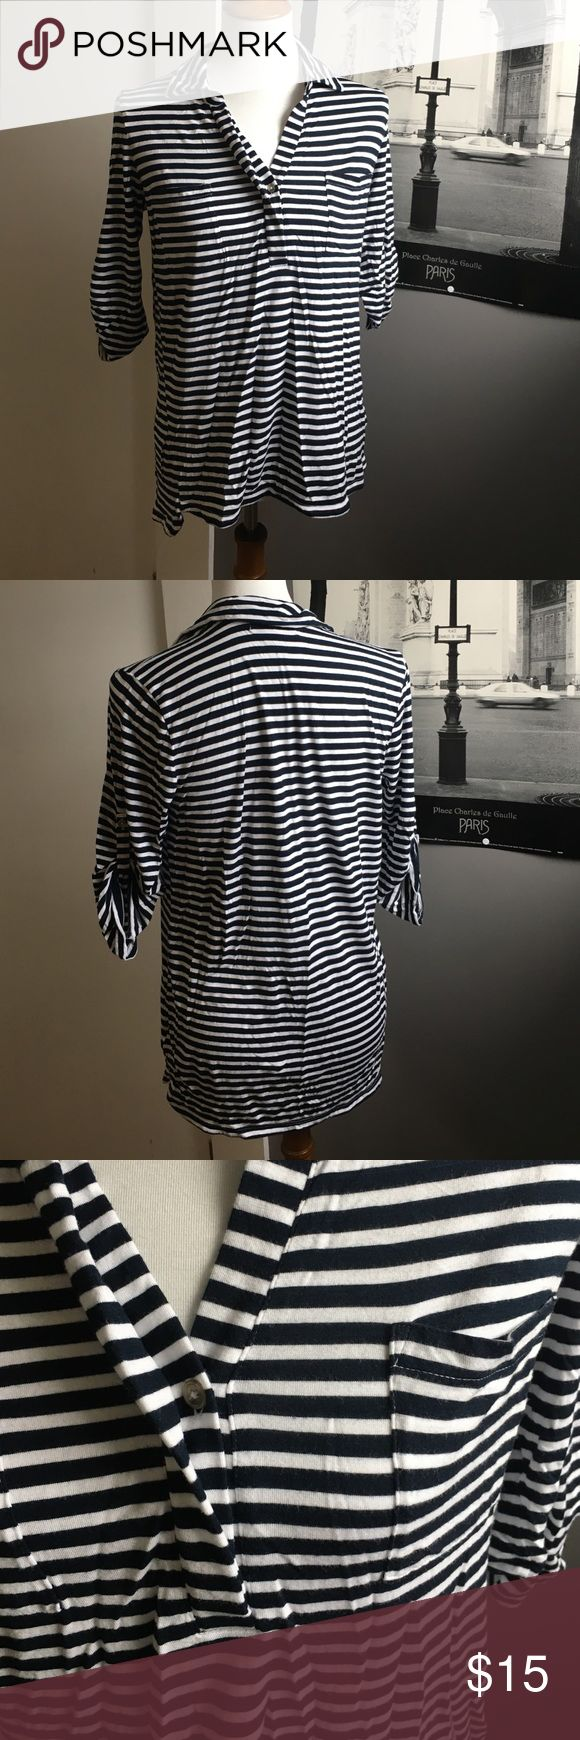 Liz Claiborne Shirt | Great Condition | Navy and White stripes | Two pockets on front | one button | Liz Claiborne Tops